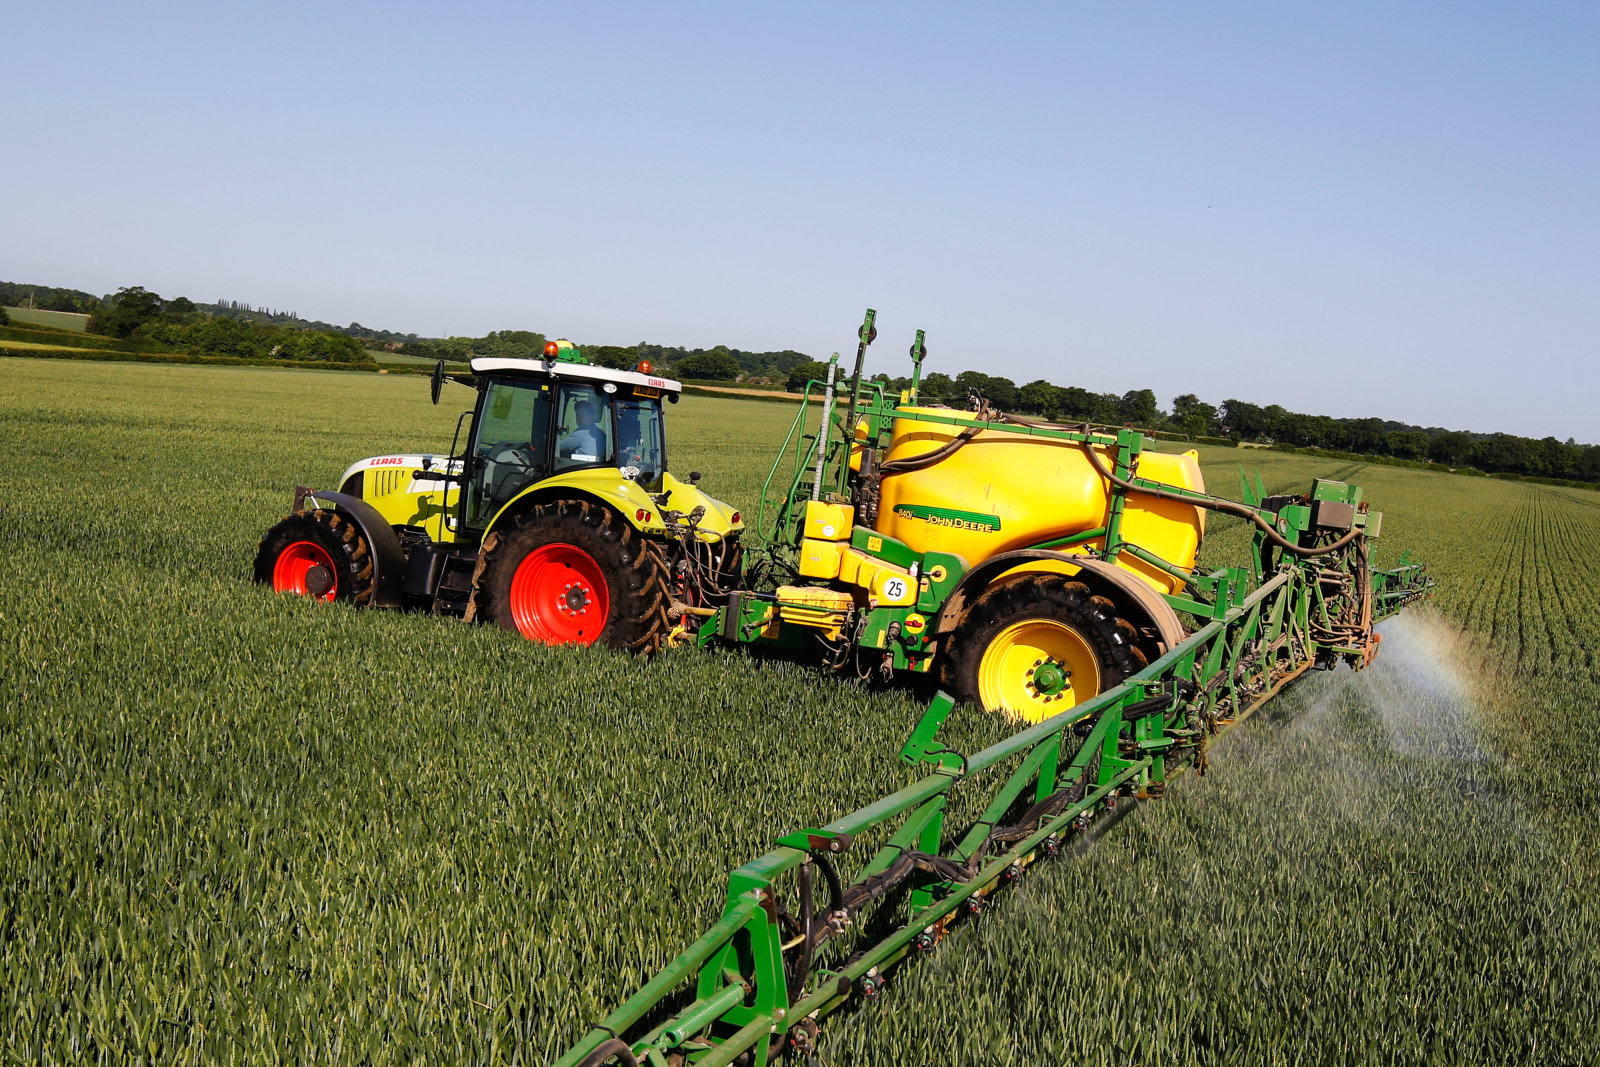 A farmer drives a Claas KGaA Axion 640 tractor, fitted with a John Deere & Co. Greenstar 2600 terminal and John Deere & Co. 840i crop sprayer, through a field of wheat at Thrales End Farm near Harpenden, U.K., on Monday June 6, 2016. German chemical company Bayer AG cited the growth in such digitally assisted farming as a key reason for its $62 billion bid for Monsanto Co., which has become a leading provider of analytics used by growers. Photographer: Luke MacGregor/Bloomberg via Getty Images